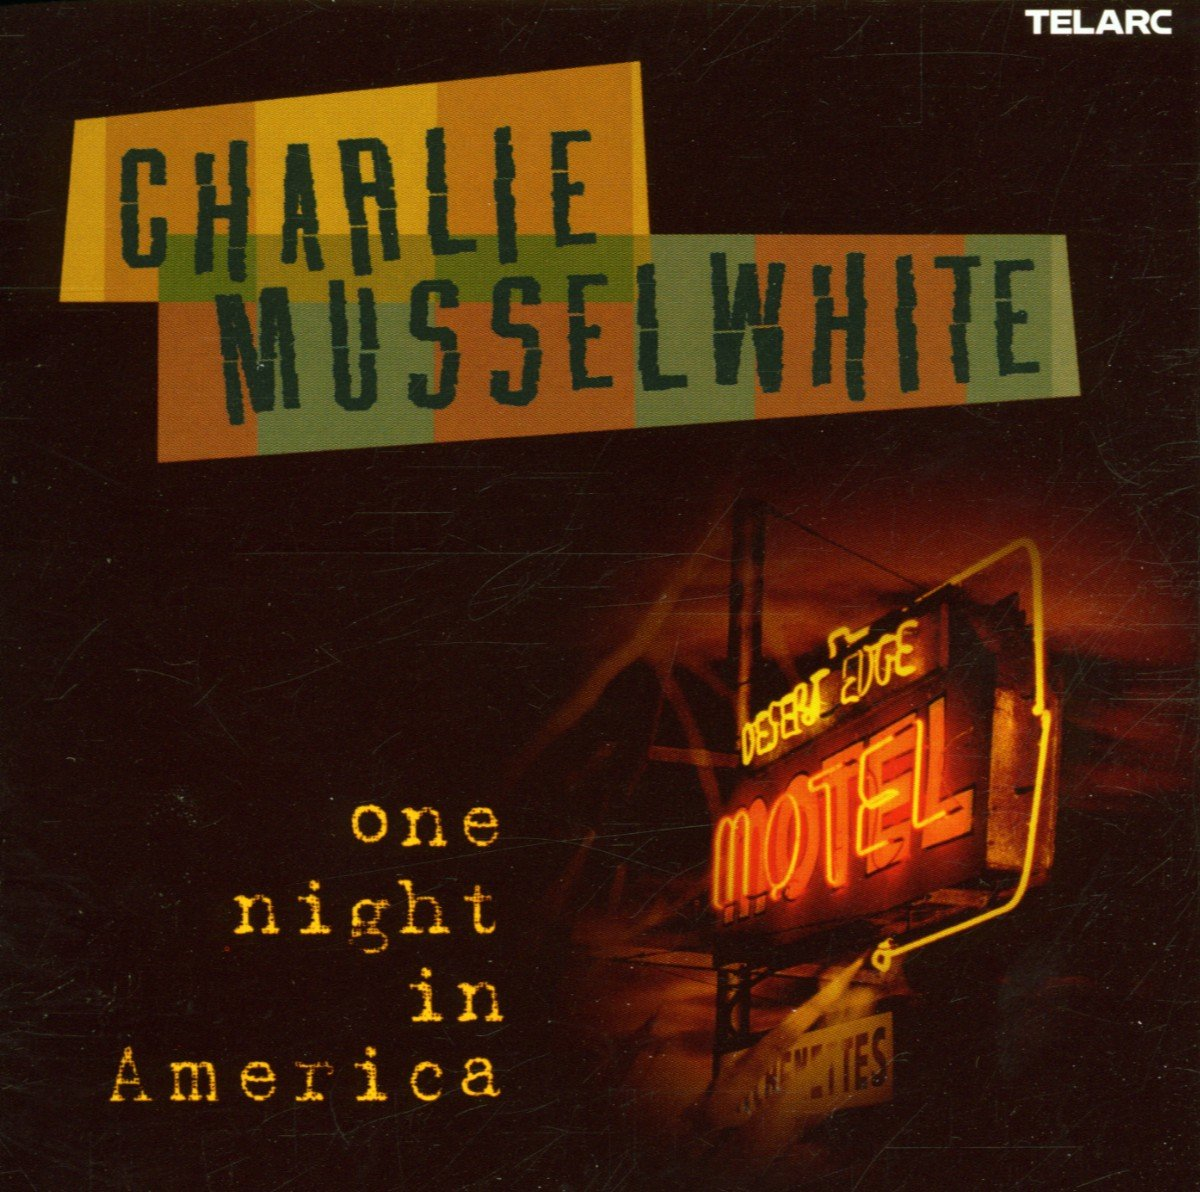 Charlie Musselwhite – One Night in America (2002) [FLAC]